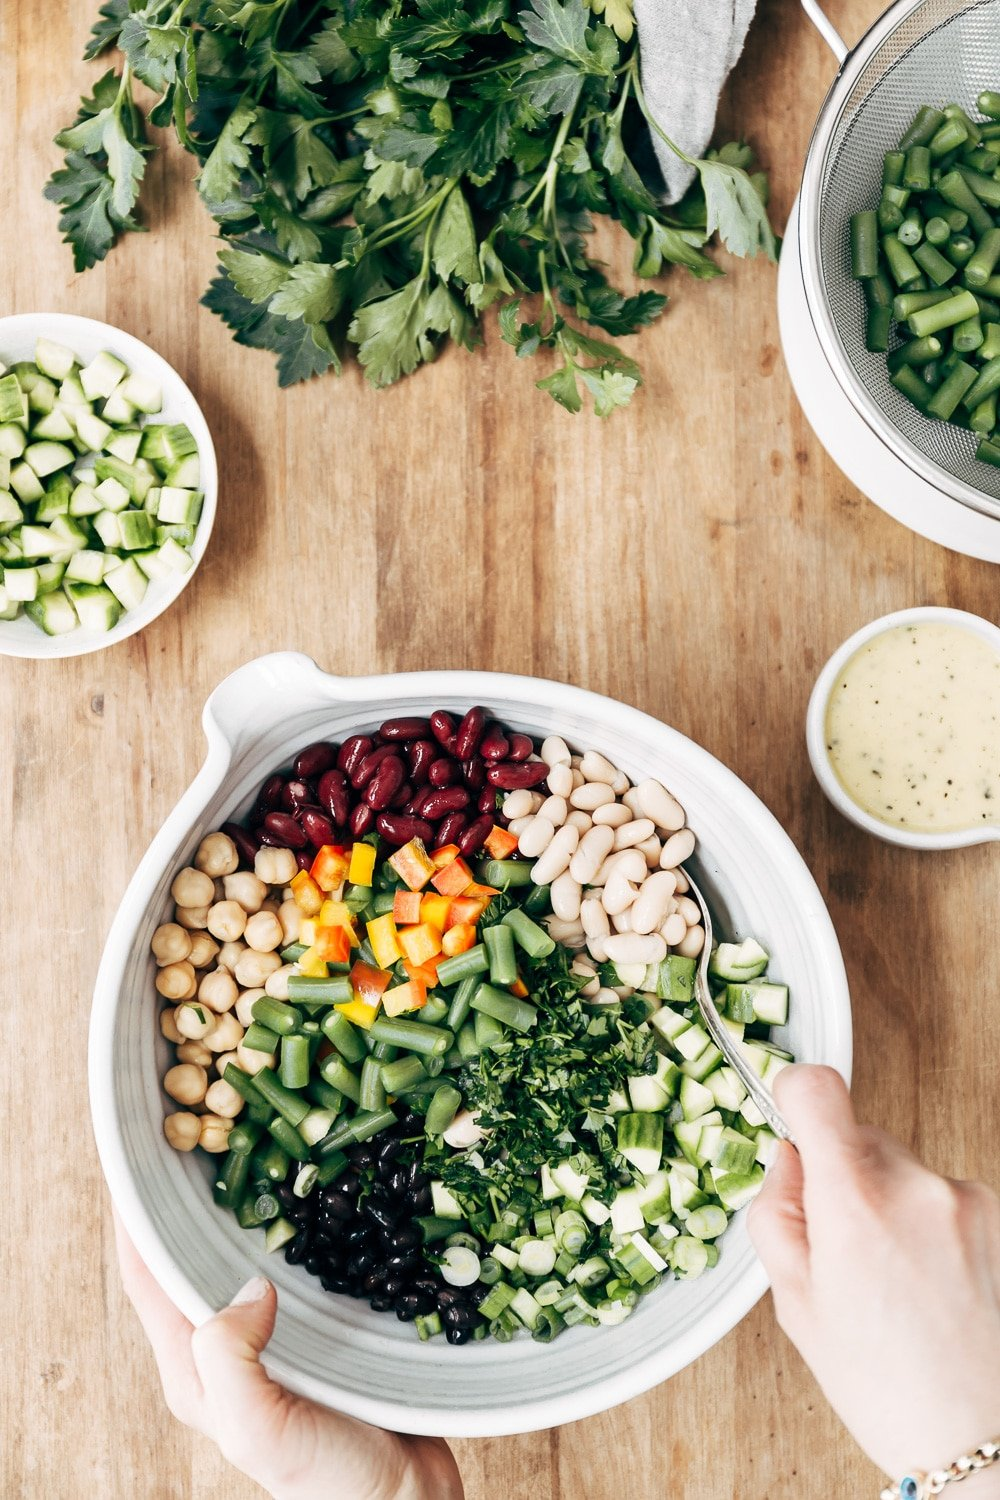 5 Bean Salad Recipe - A woman is photographed from the top view as she is getting ready to mix a bowl of five bean salad.